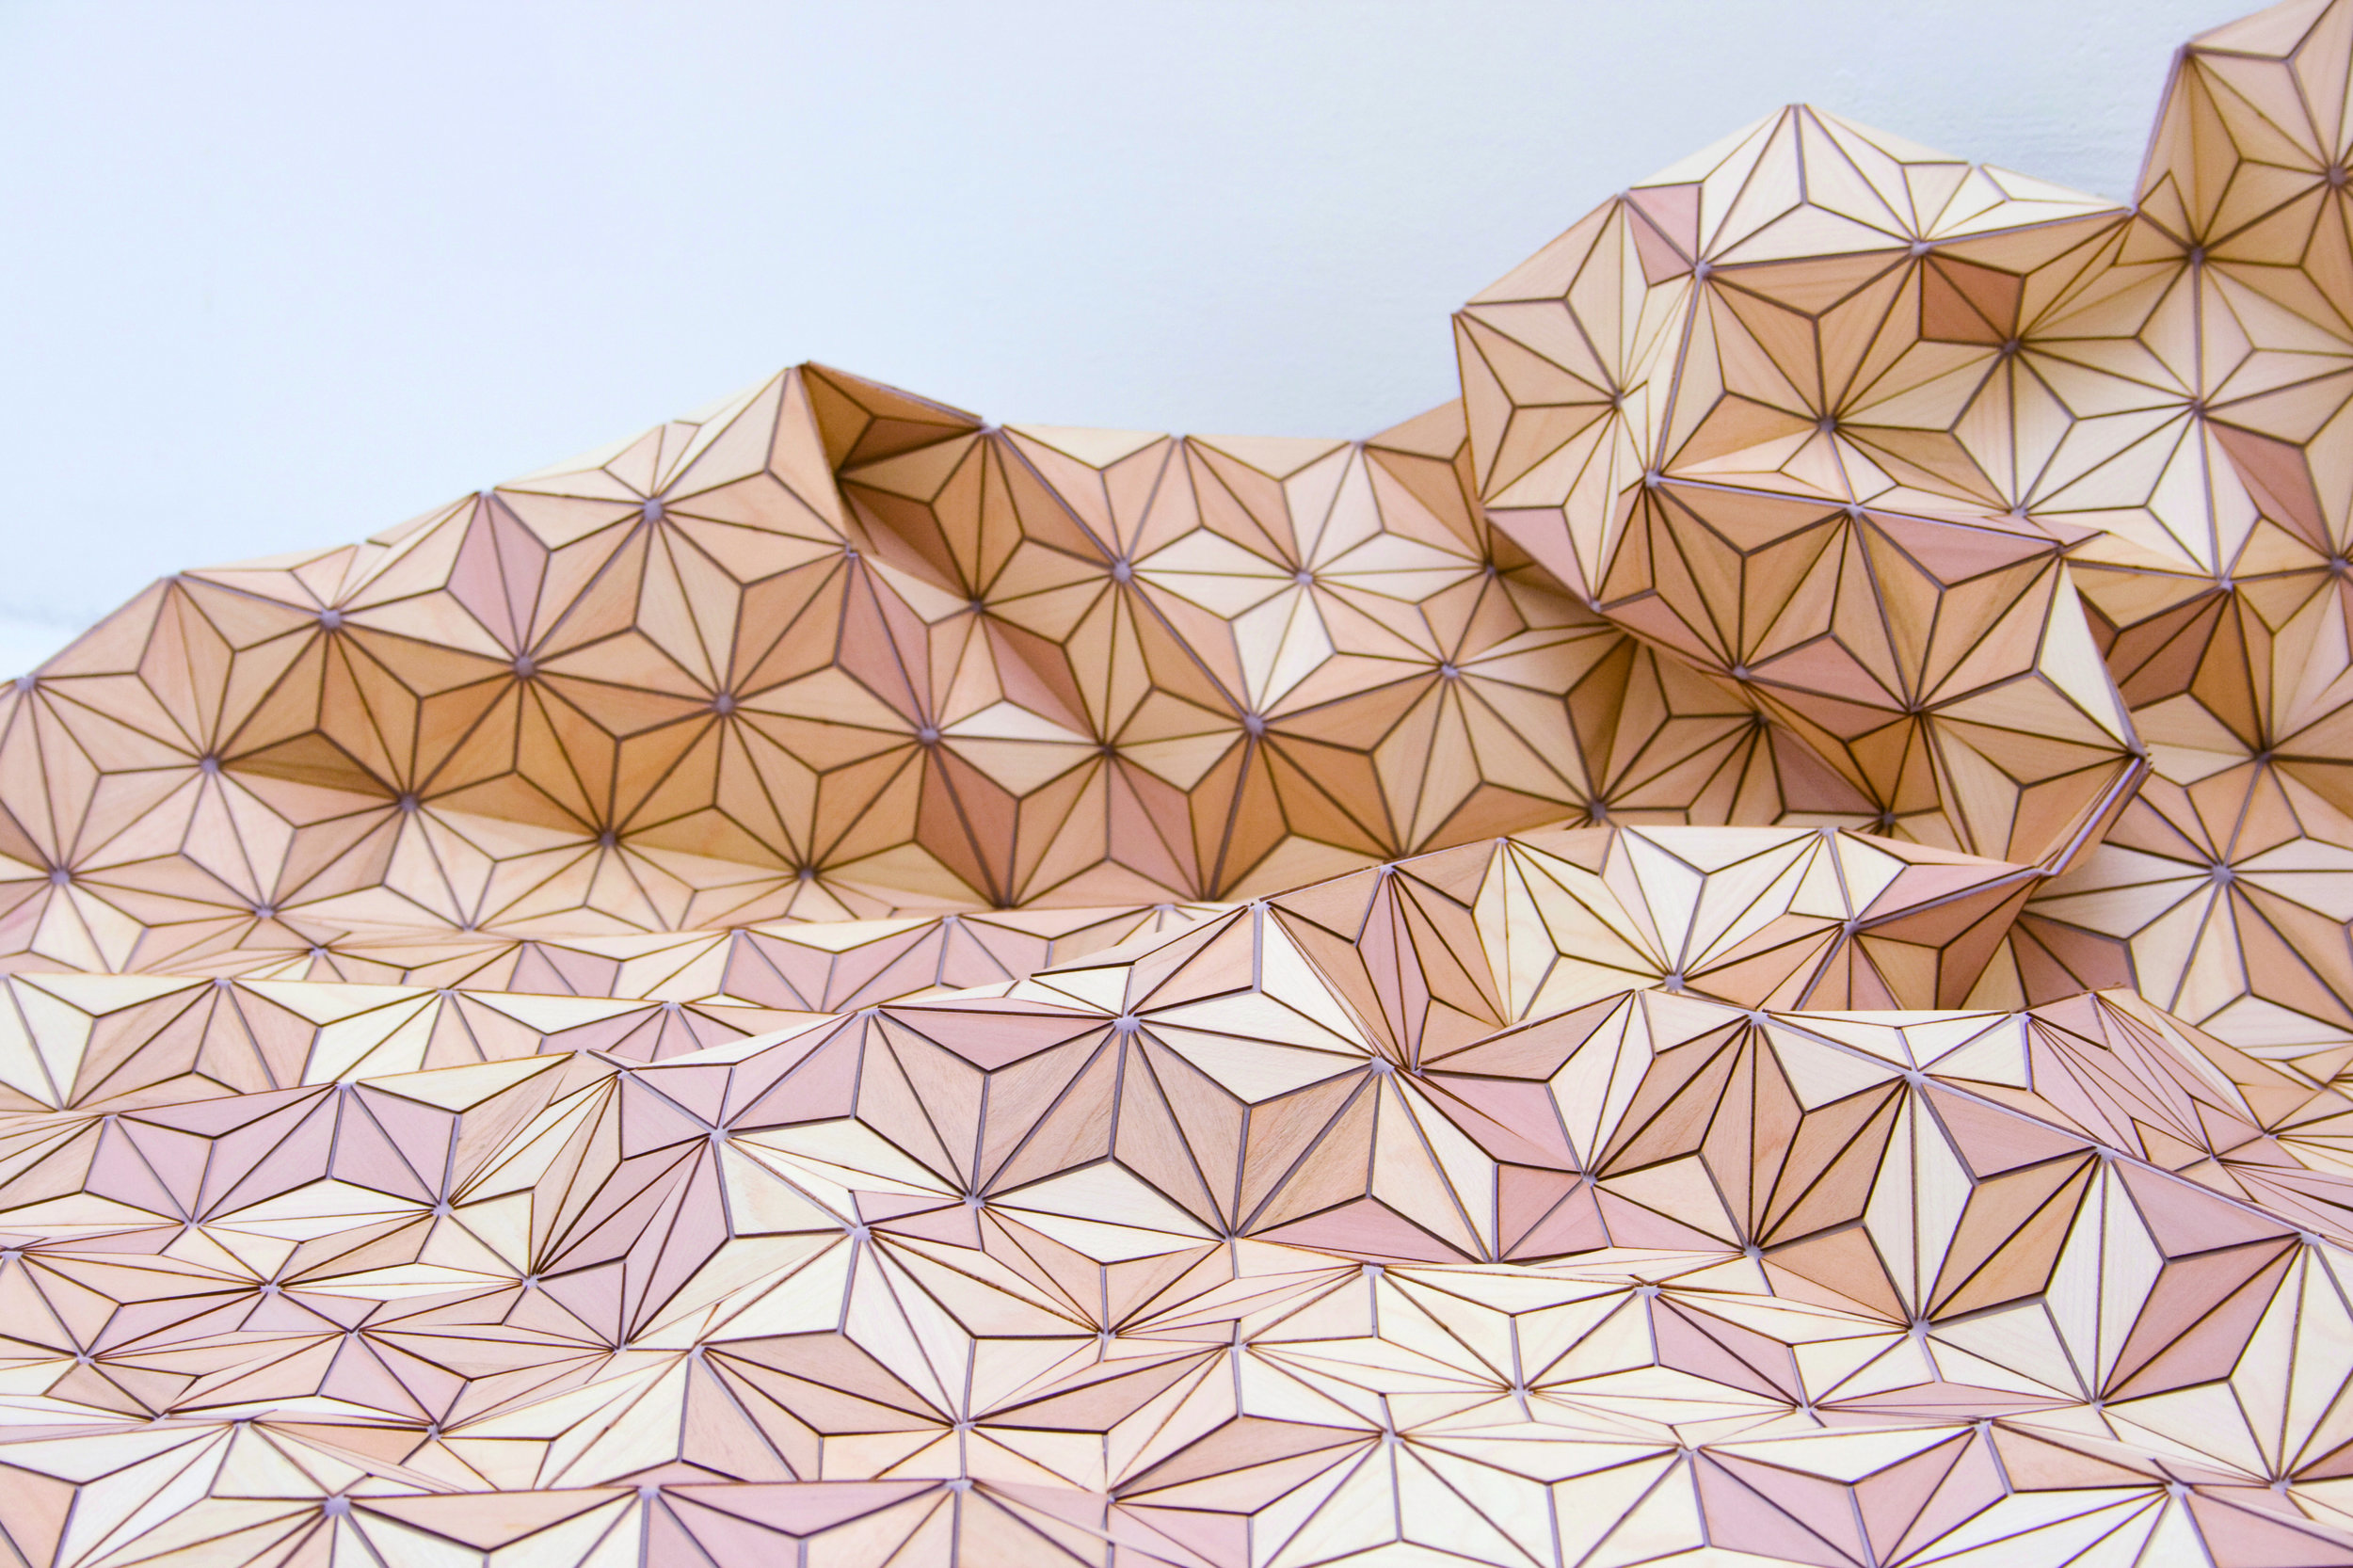 Elisa Strozyk  , Wooden Textile, No 1 , 2010 (detail). Apple wood, cherry, beech, maple, silk. 47 1/4 x 70 3/4 in. Courtesy of the Artist. 2016.ES.01.  Photo: Courtesy of  Sebastian Neeb and Elisa Strozyk  METHOD: Laser cut veneer wood, placed by hand